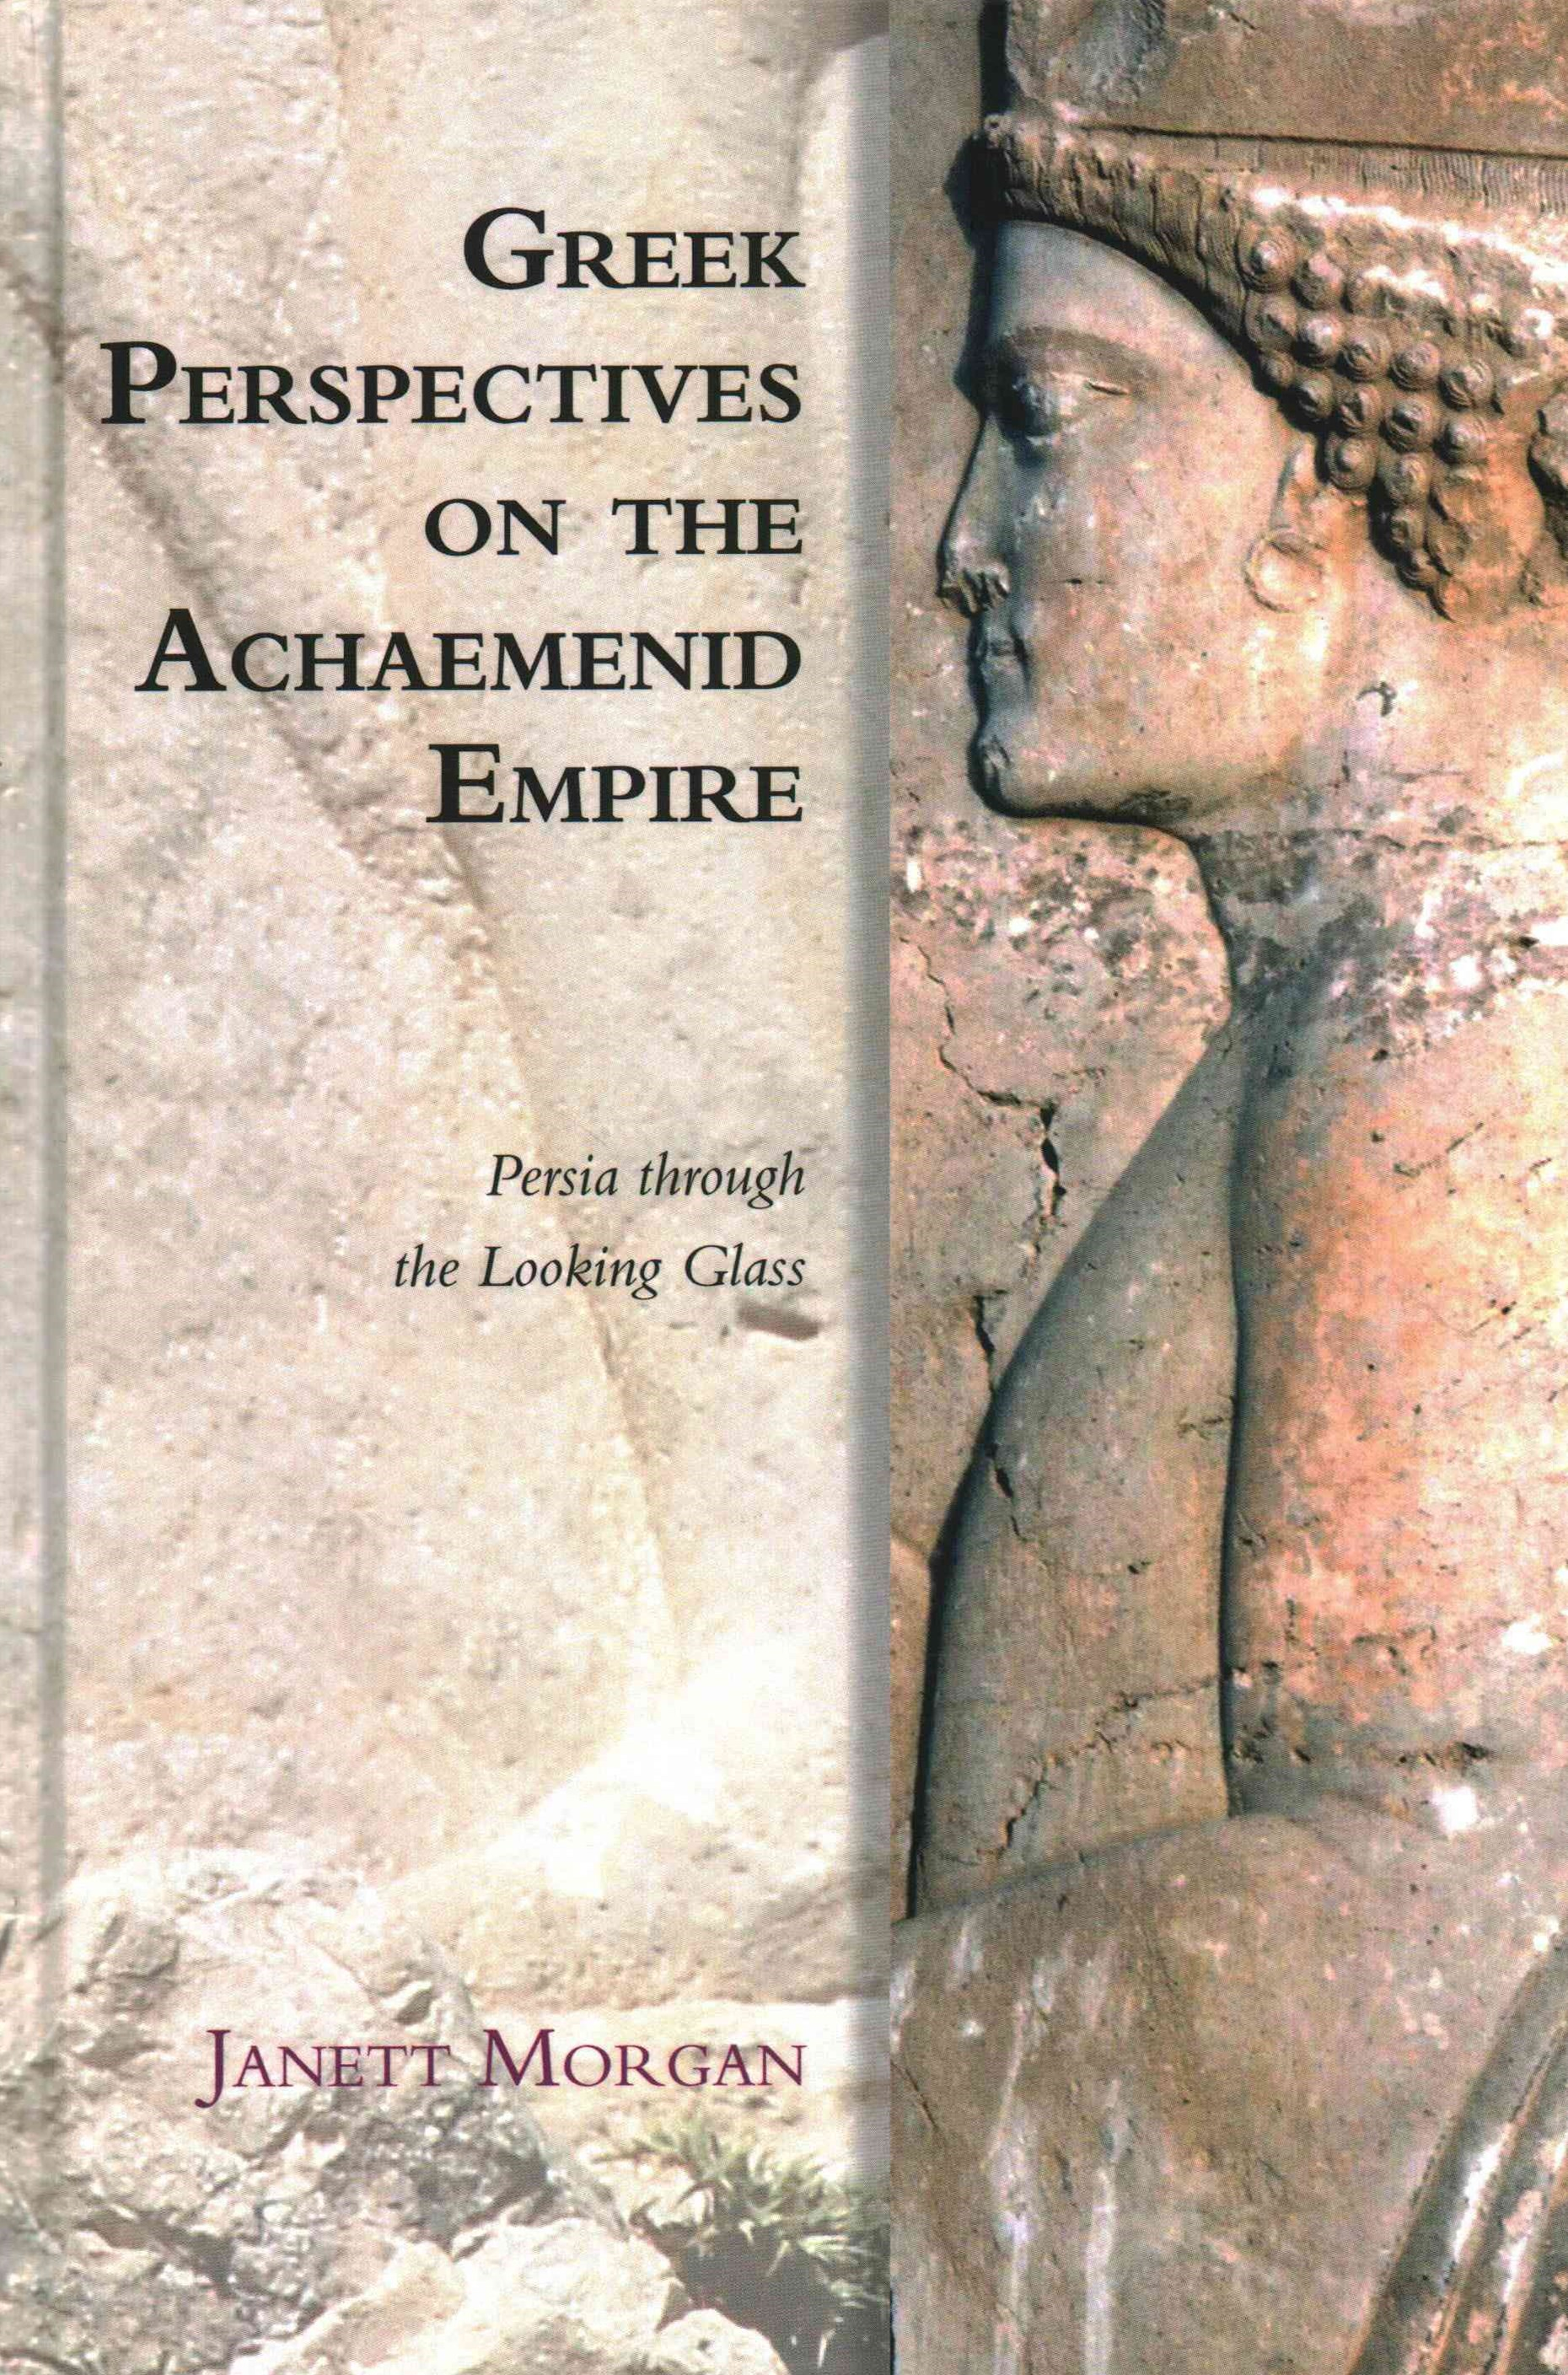 Greek Perspectives on the Achaemenid Empire